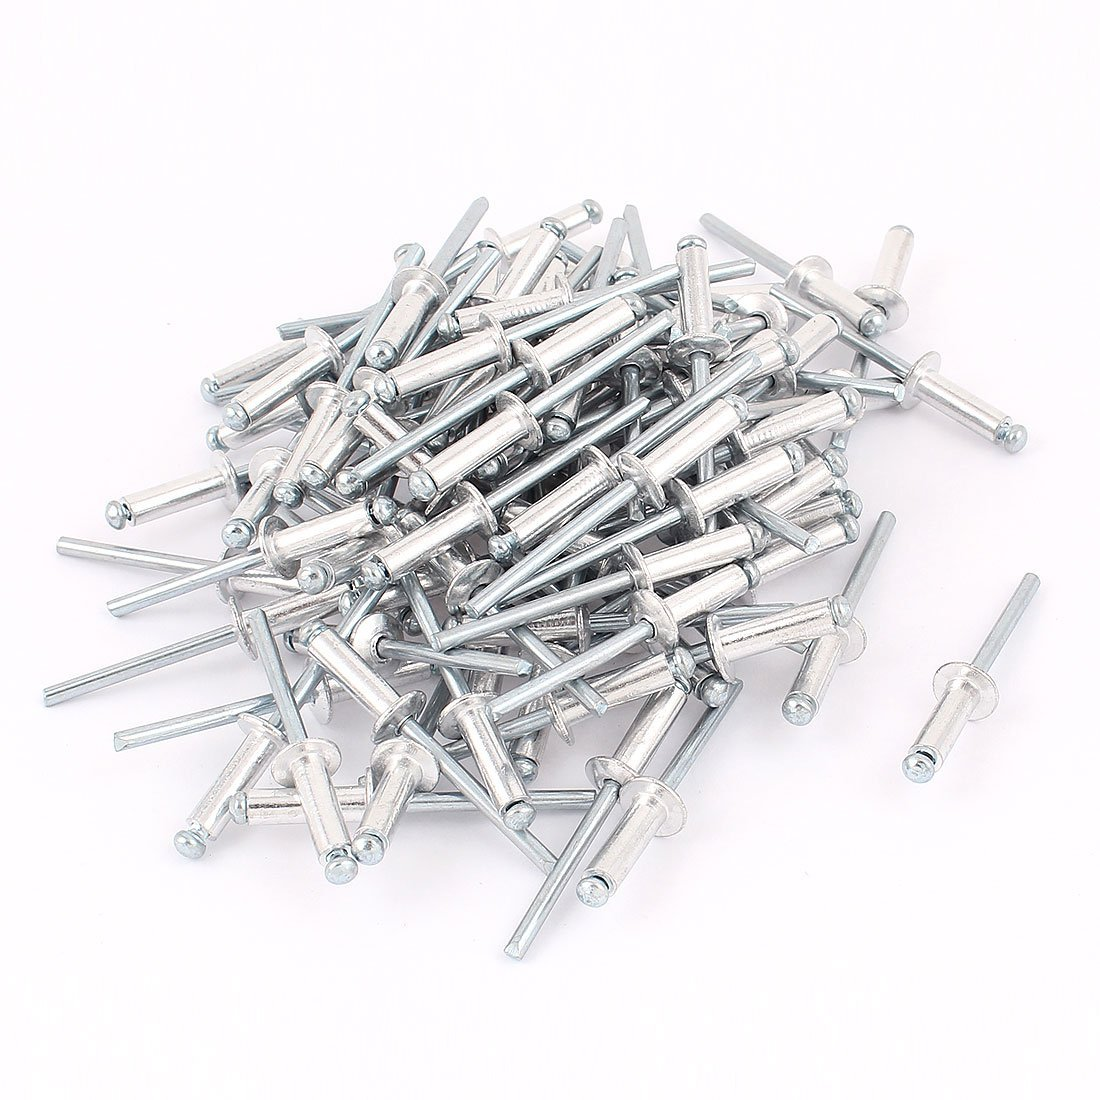 100Pcs 4.8mm 3/16 Aluminium Large Flange Open End Blind Pop Rivet100Pcs 4.8mm 3/16 Aluminium Large Flange Open End Blind Pop Rivet